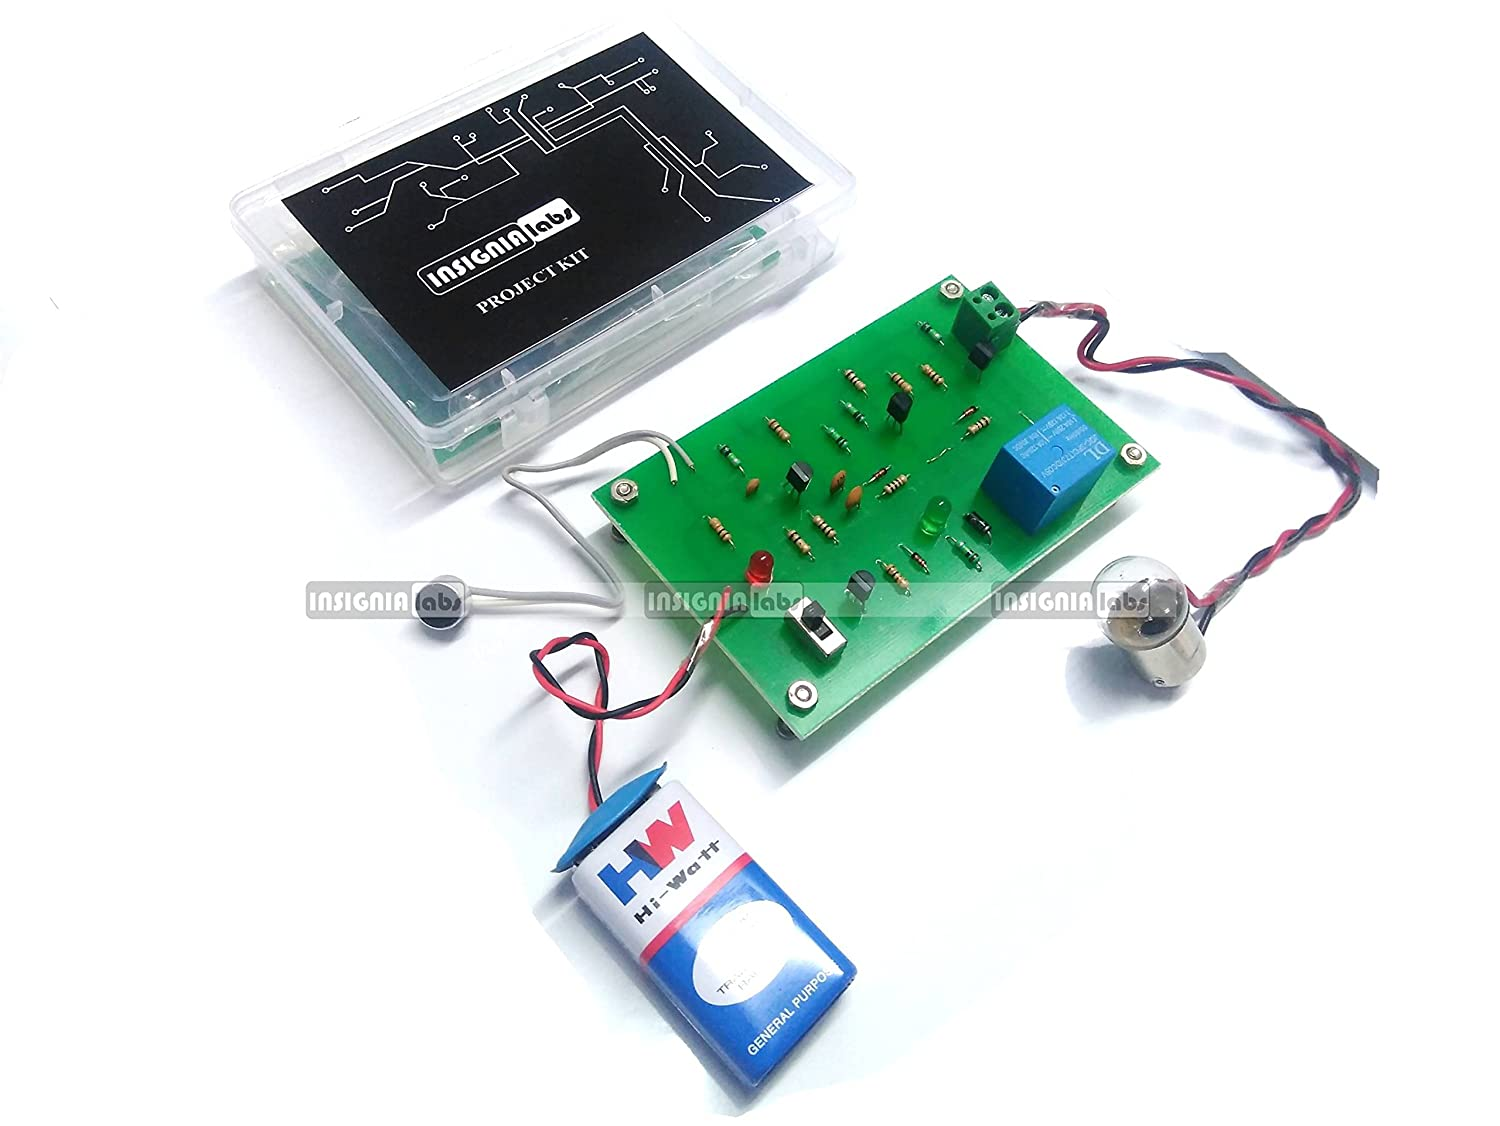 Buy Insignia Labs Clap Switch Based Light Bulb Control Kit Project Microcontroller Electronic Eye Controlled Security System School College Online At Low Prices In India